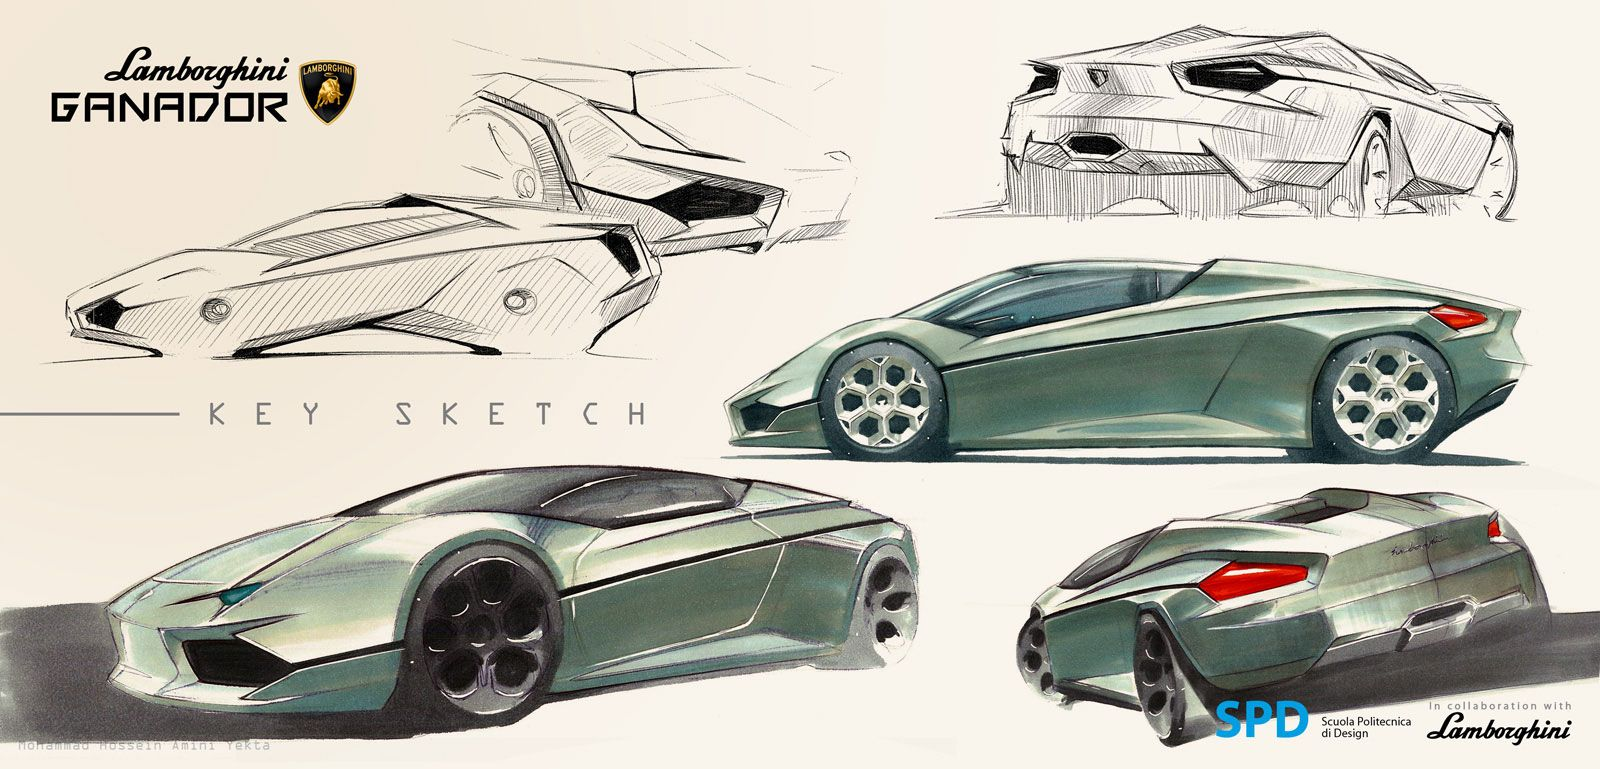 Lamborghini Ganador Concept Design Sketch Supercar Design Concept Cars Concept Car Sketch